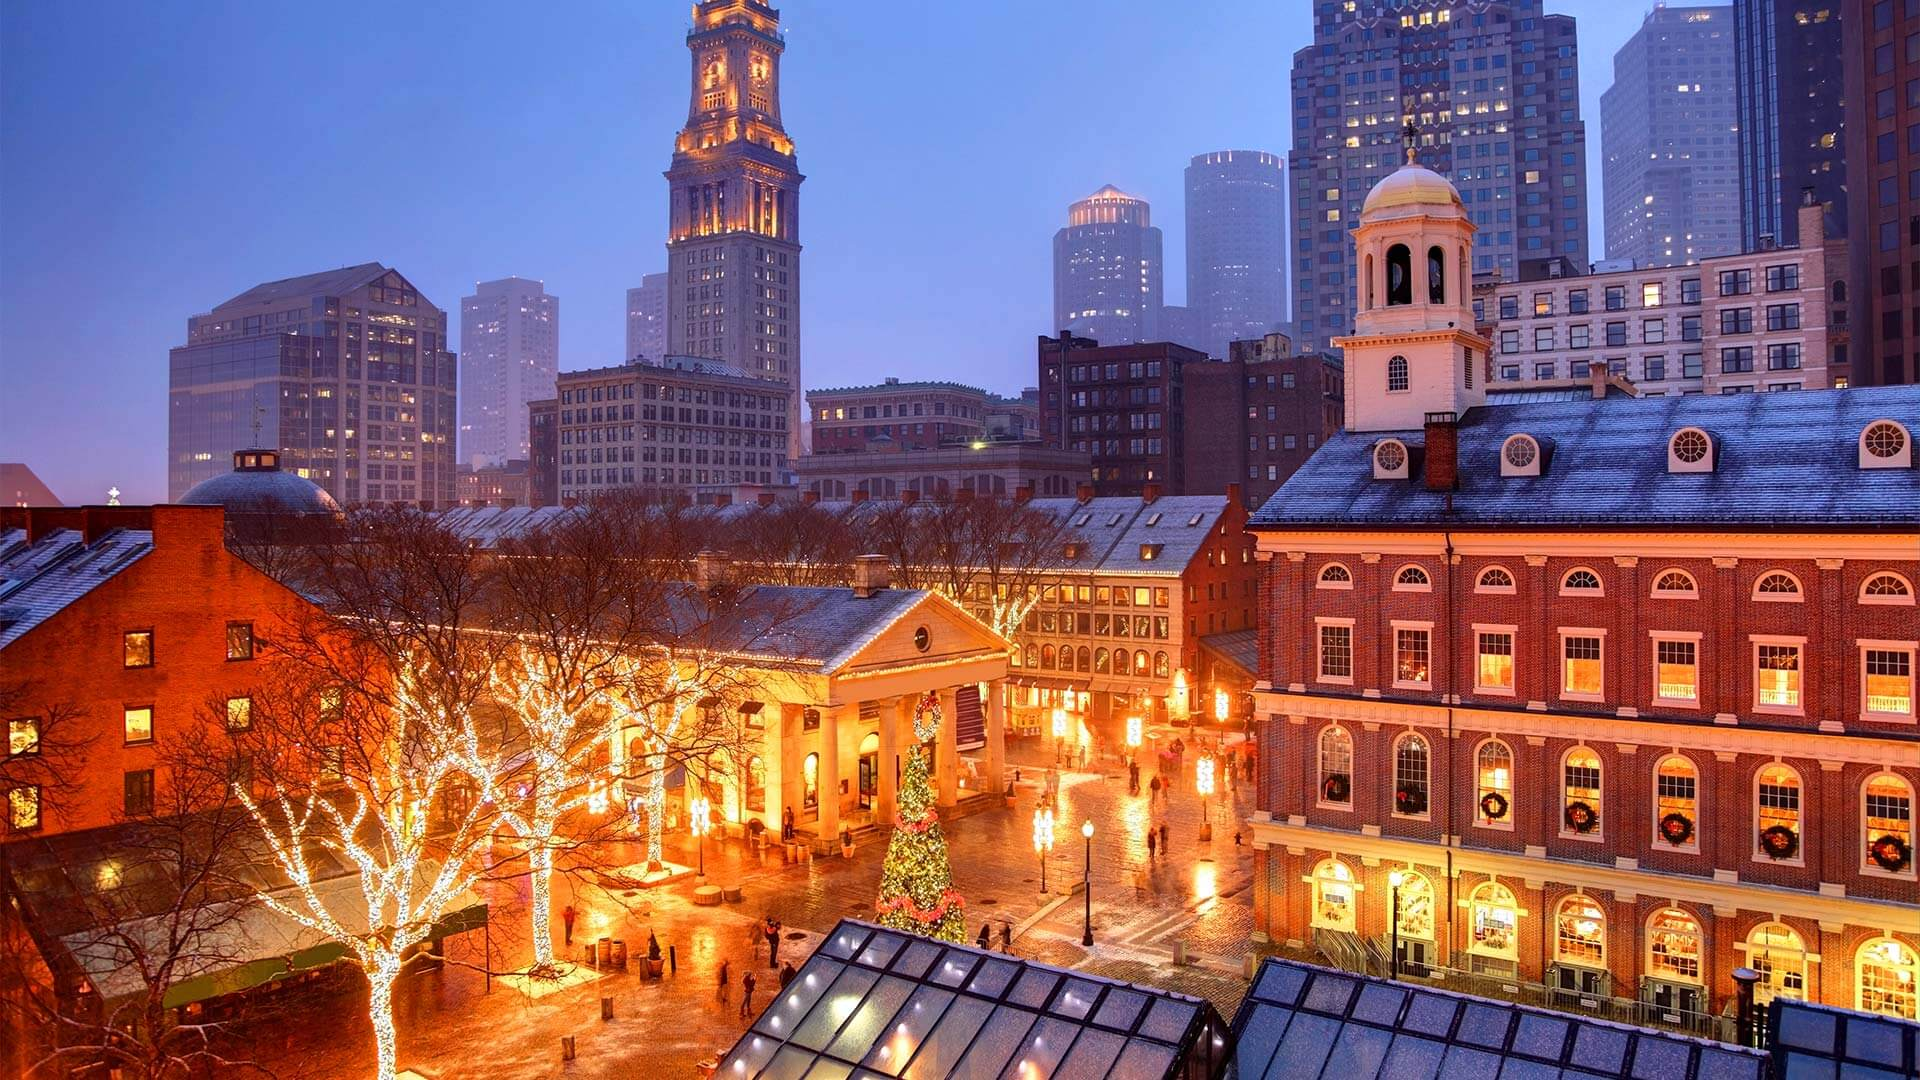 Quincy Market in Boston during the holidays